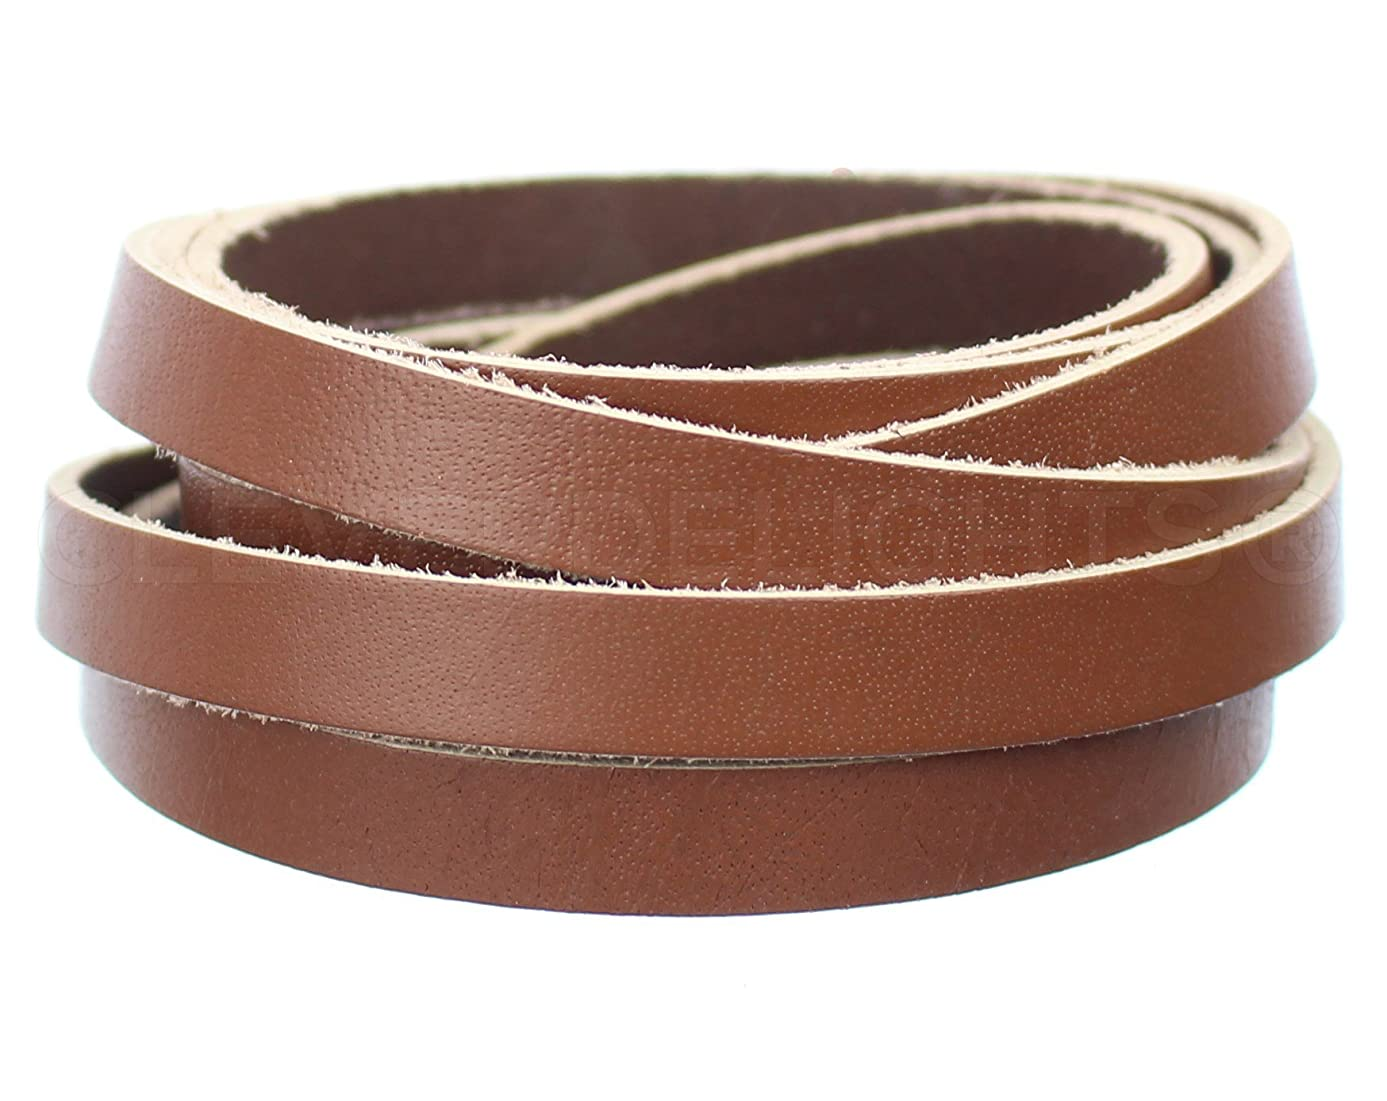 CleverDelights Premium Cowhide Leather Strap -- 3/8